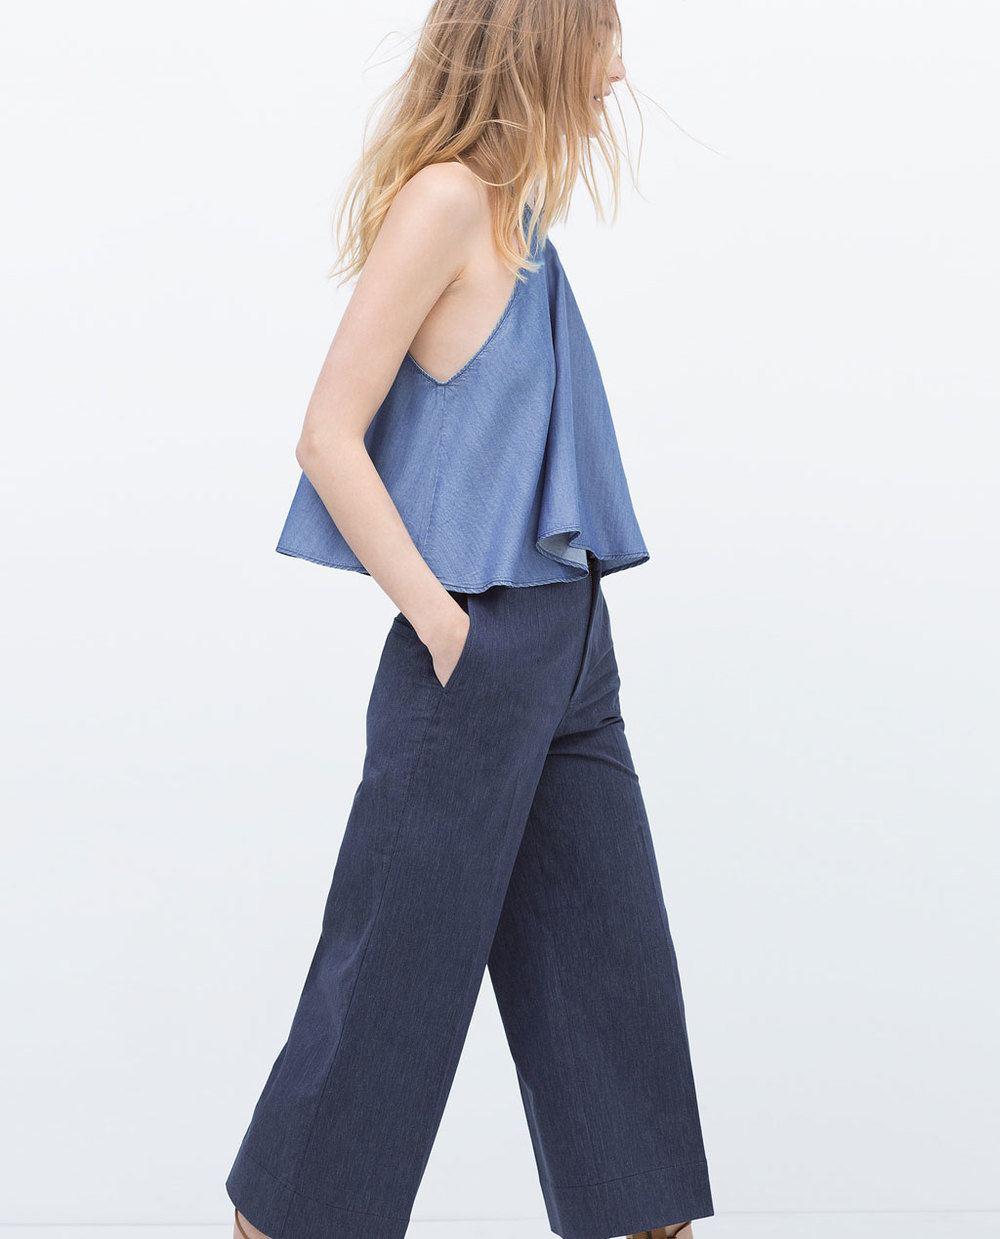 DENIM TOP 39.99 USD